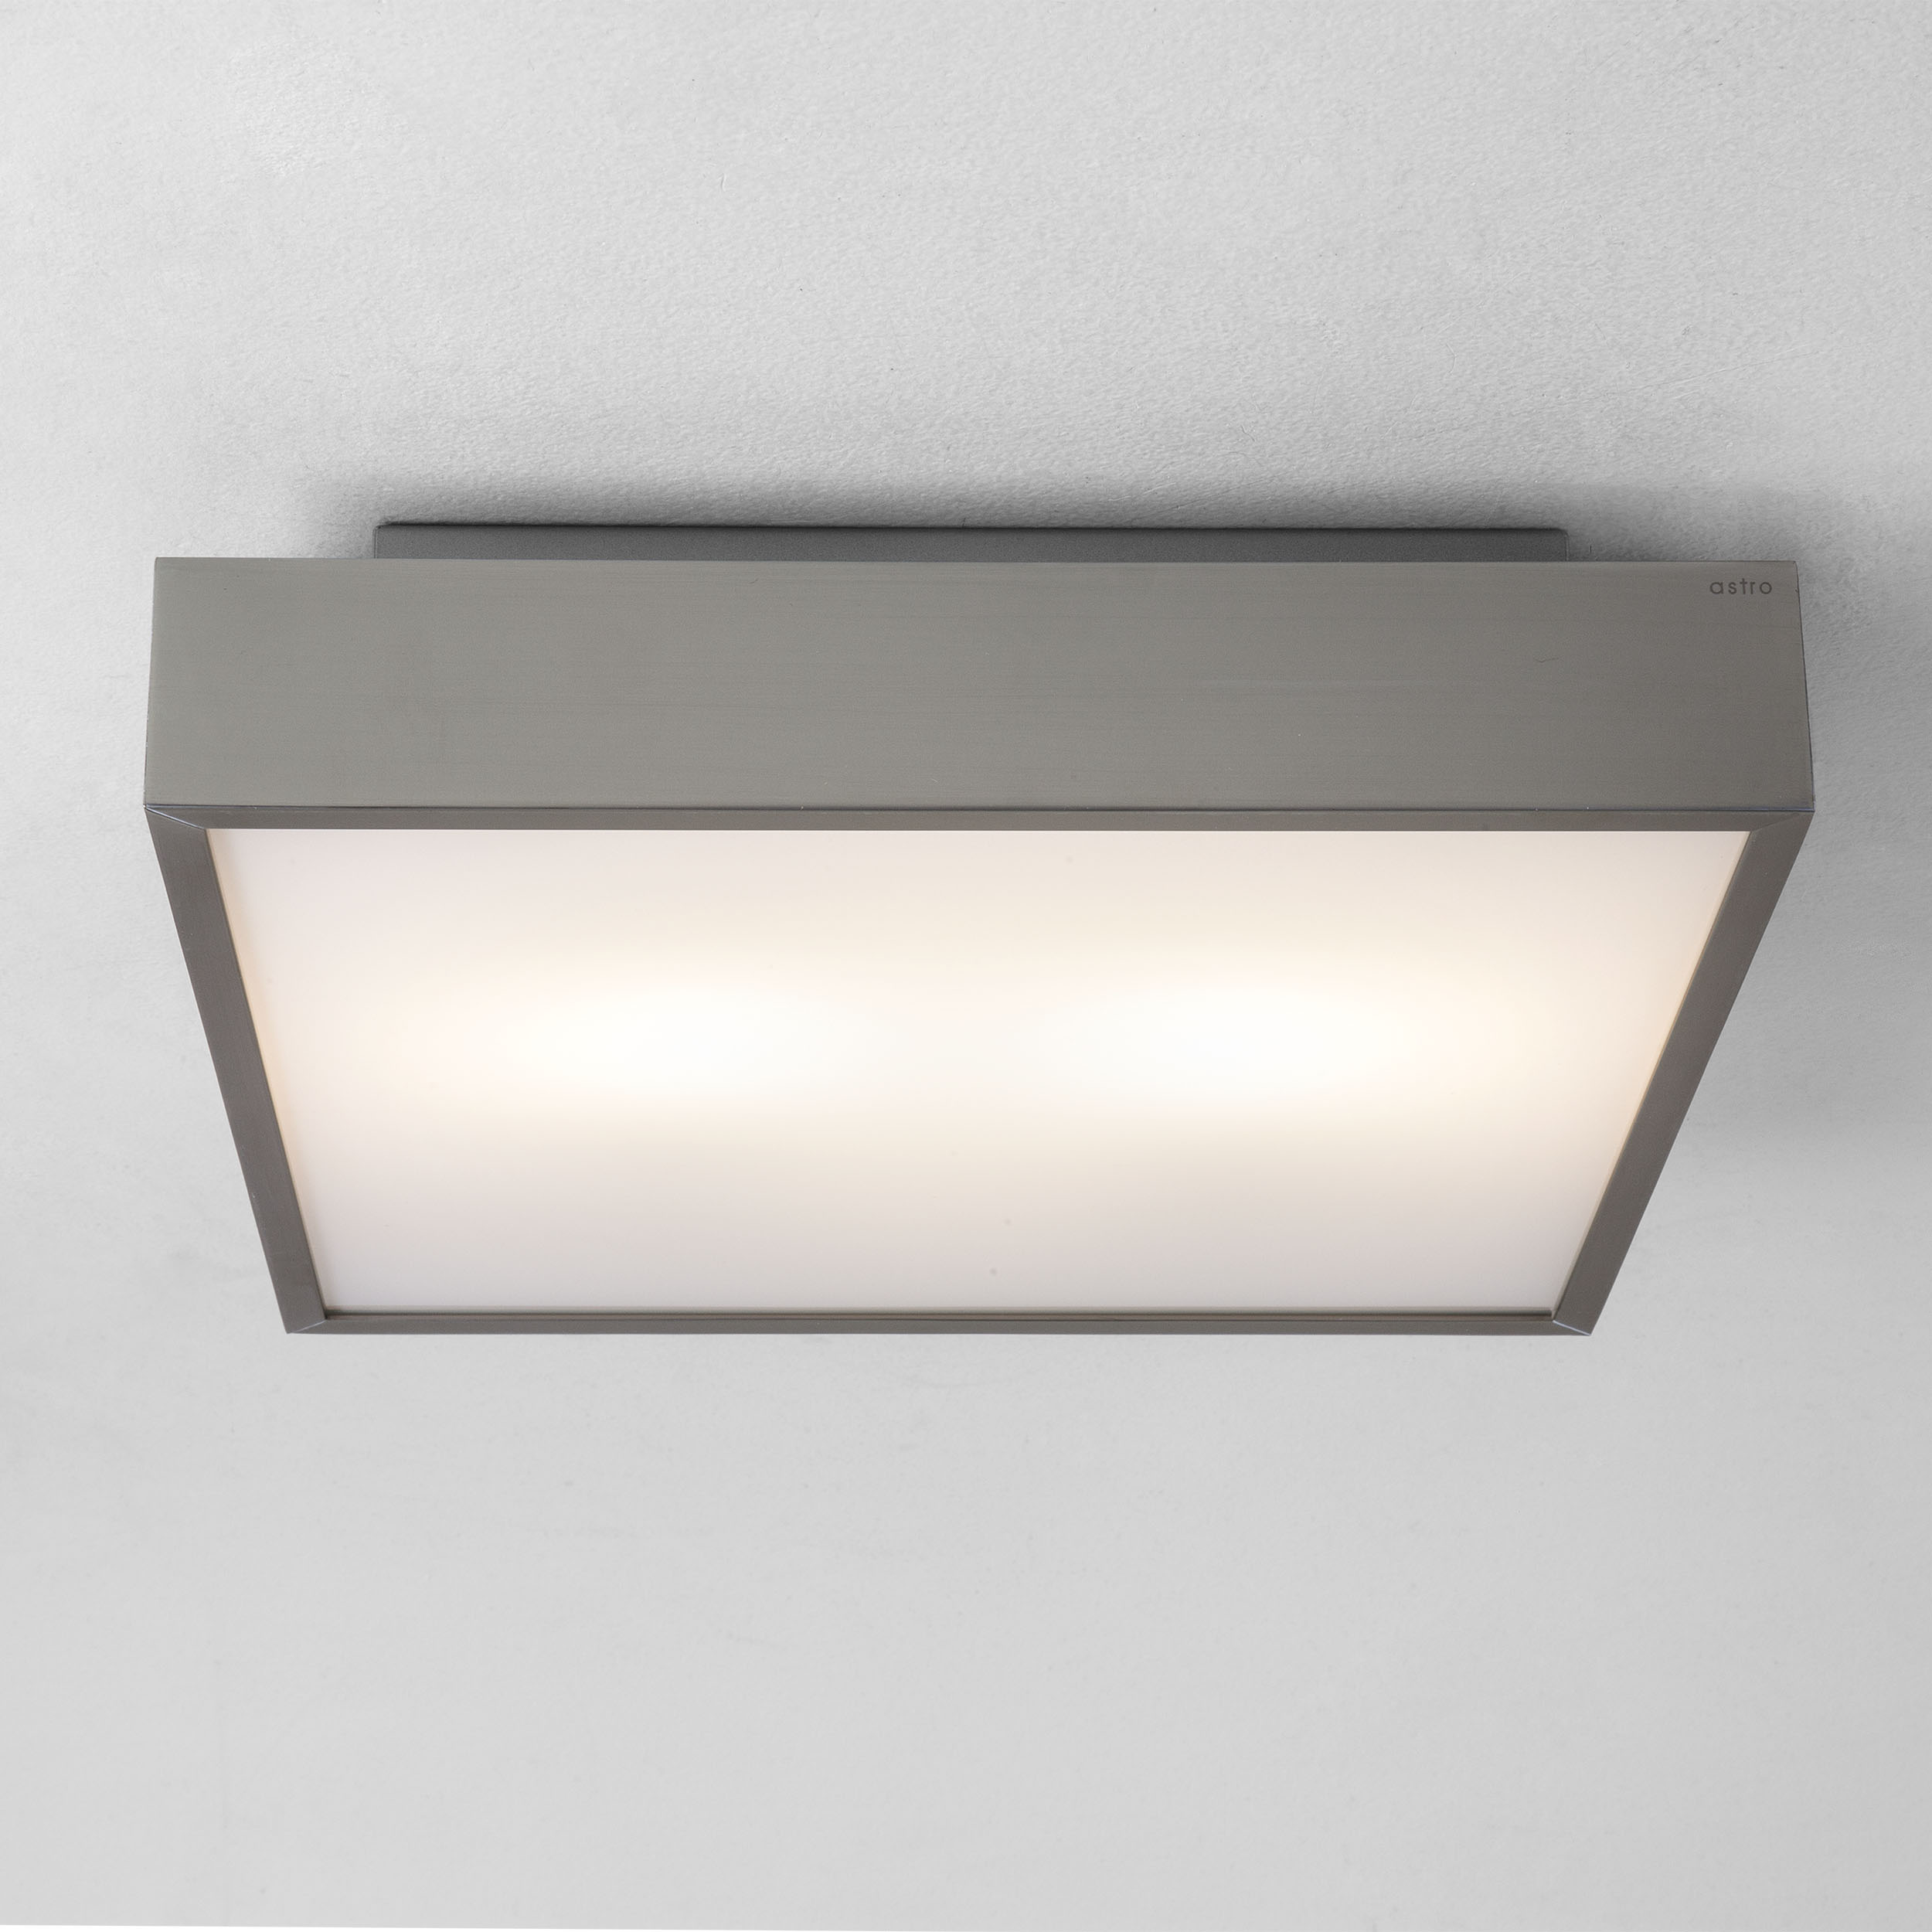 LED Square bathroom ceiling light 300 x 300 Astro Taketa 17.7W matt nickel IP44 Thumbnail 1